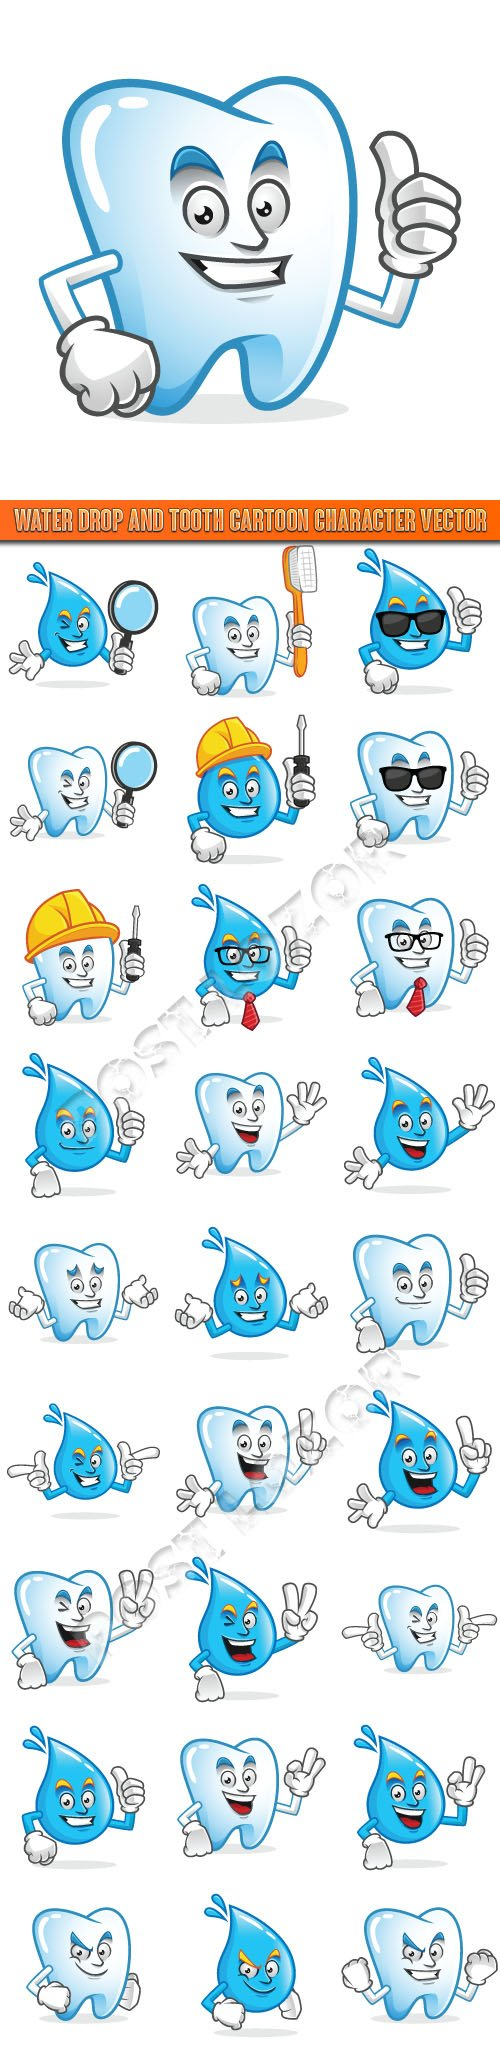 Water drop and tooth cartoon character vector